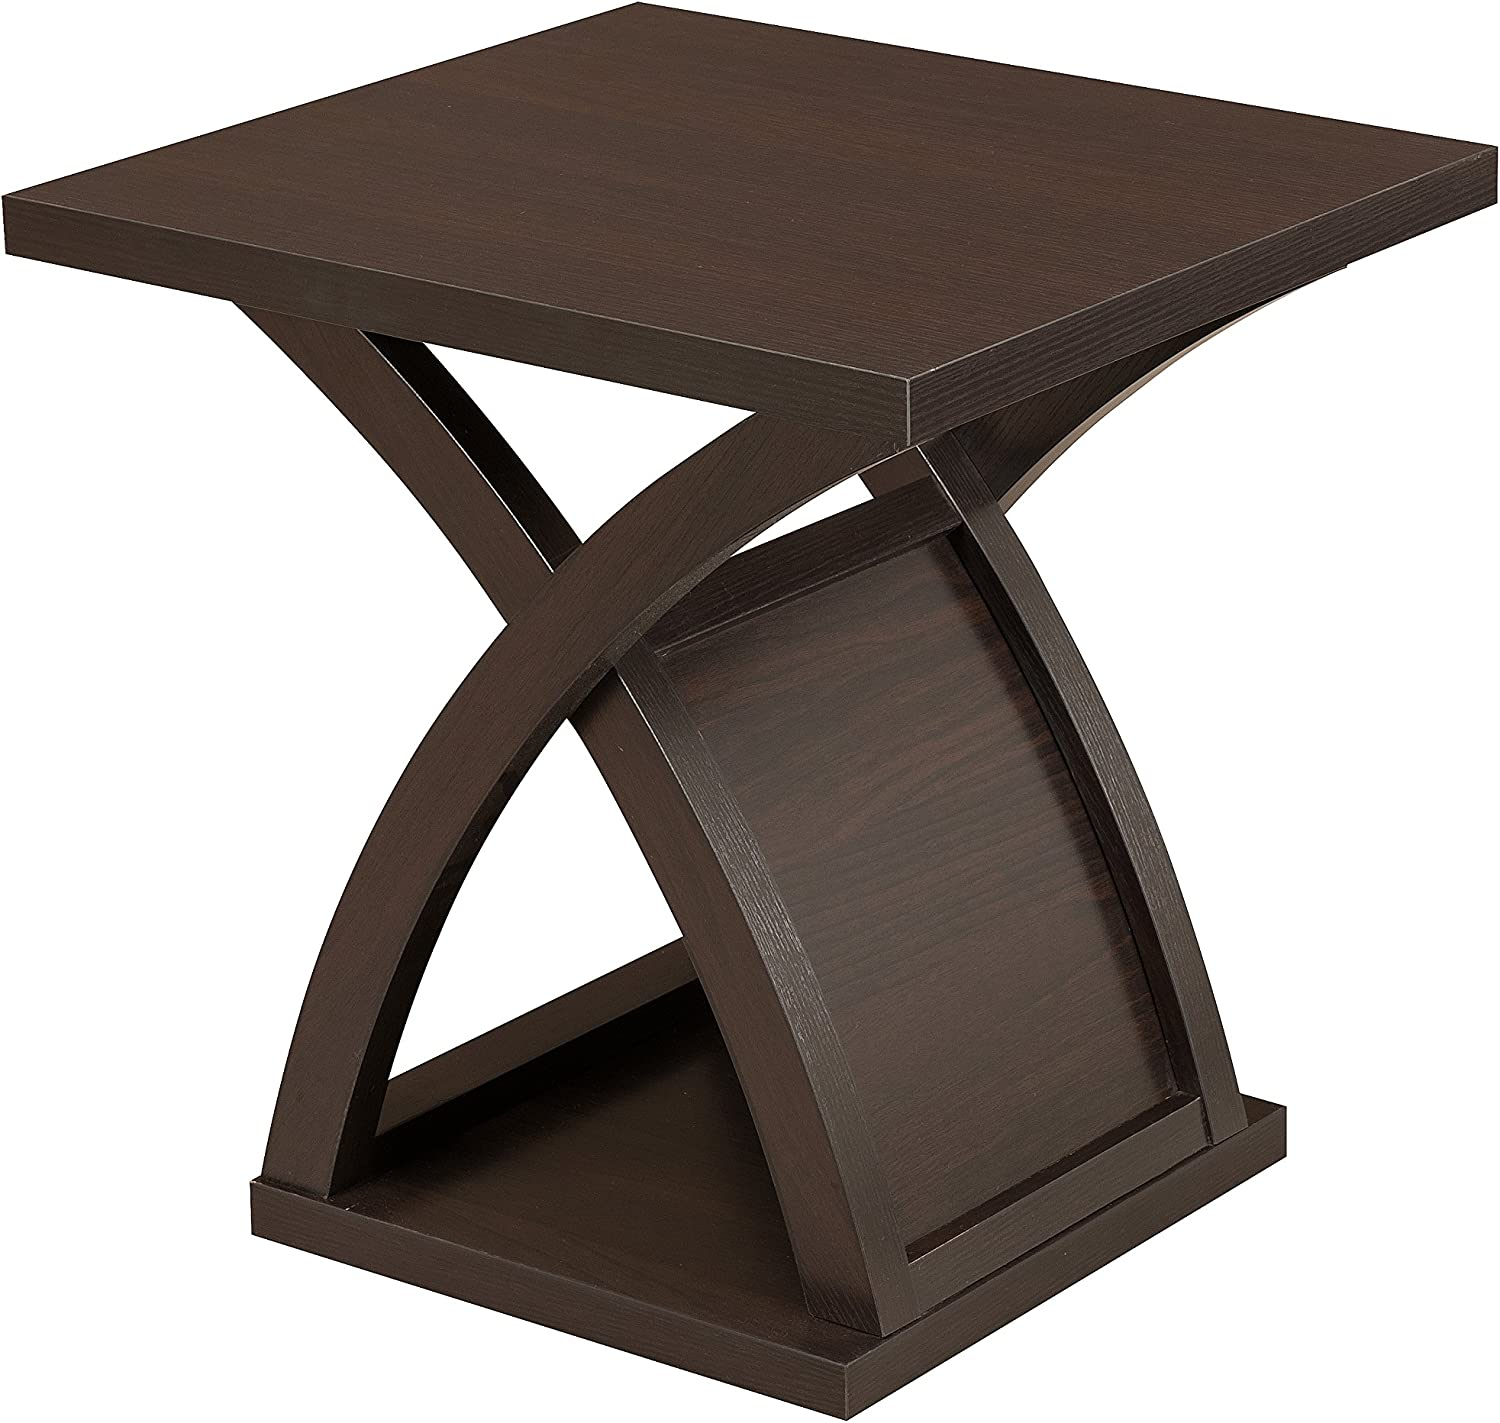 Furniture of America Verdugo End Table, Espresso